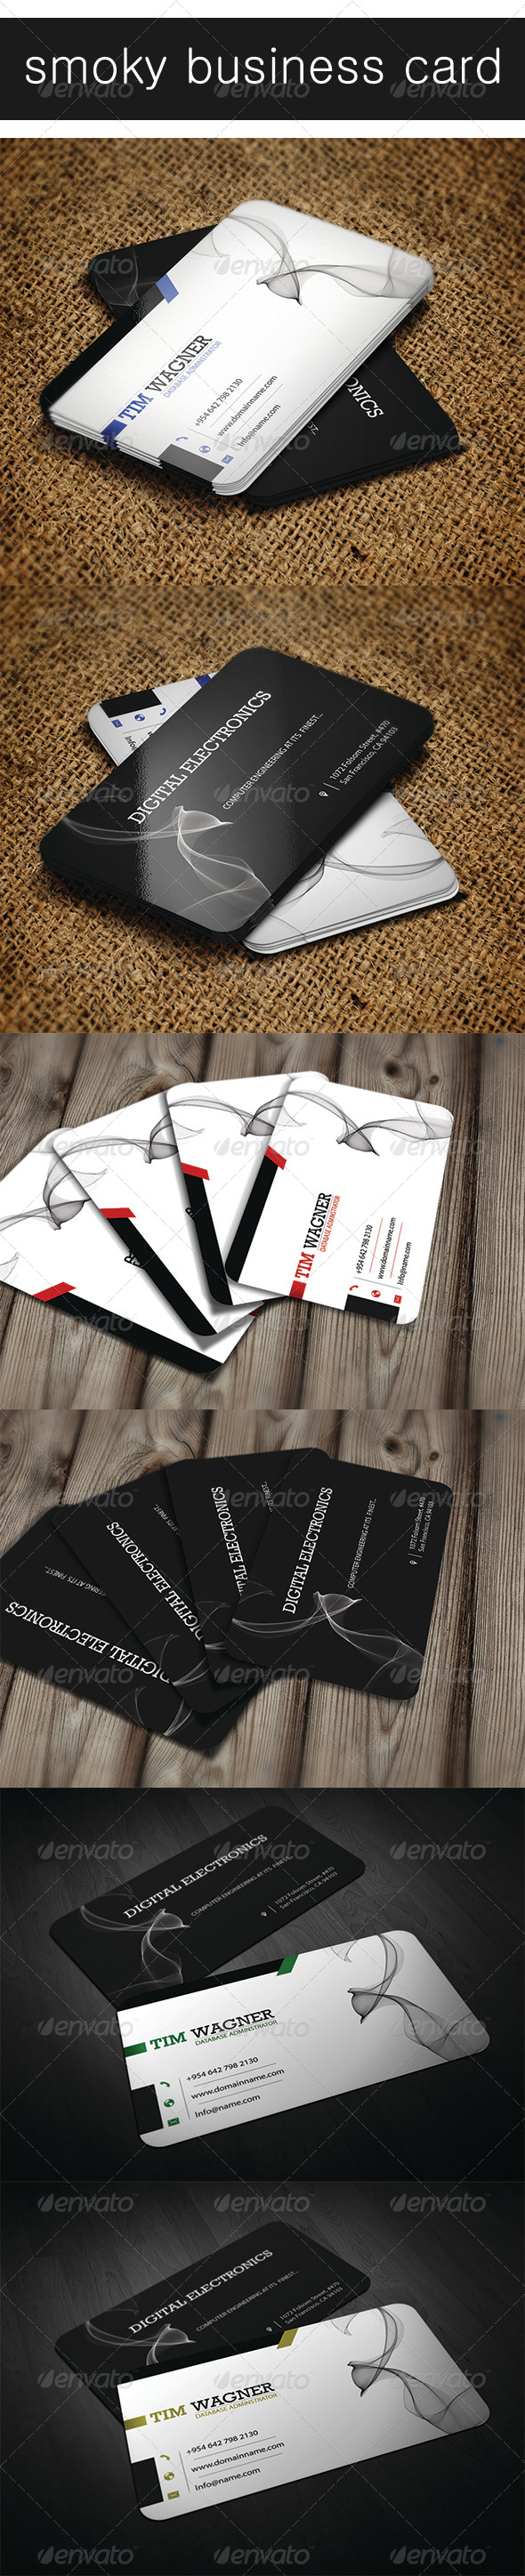 Smoky Business Card - Creative Business Cards